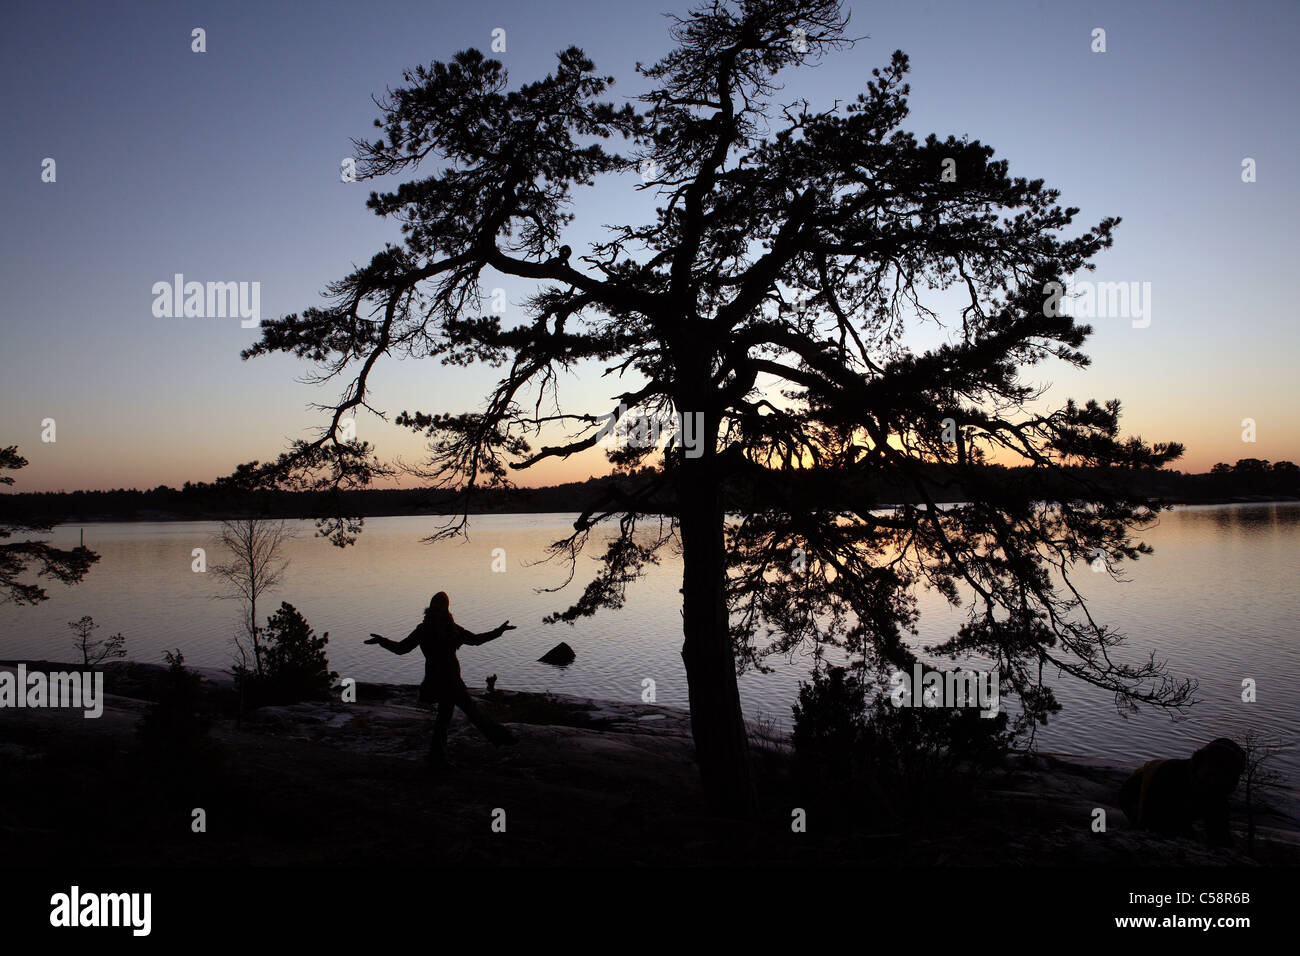 Silhouette of a pine tree at a lake in the evening - Stock Image